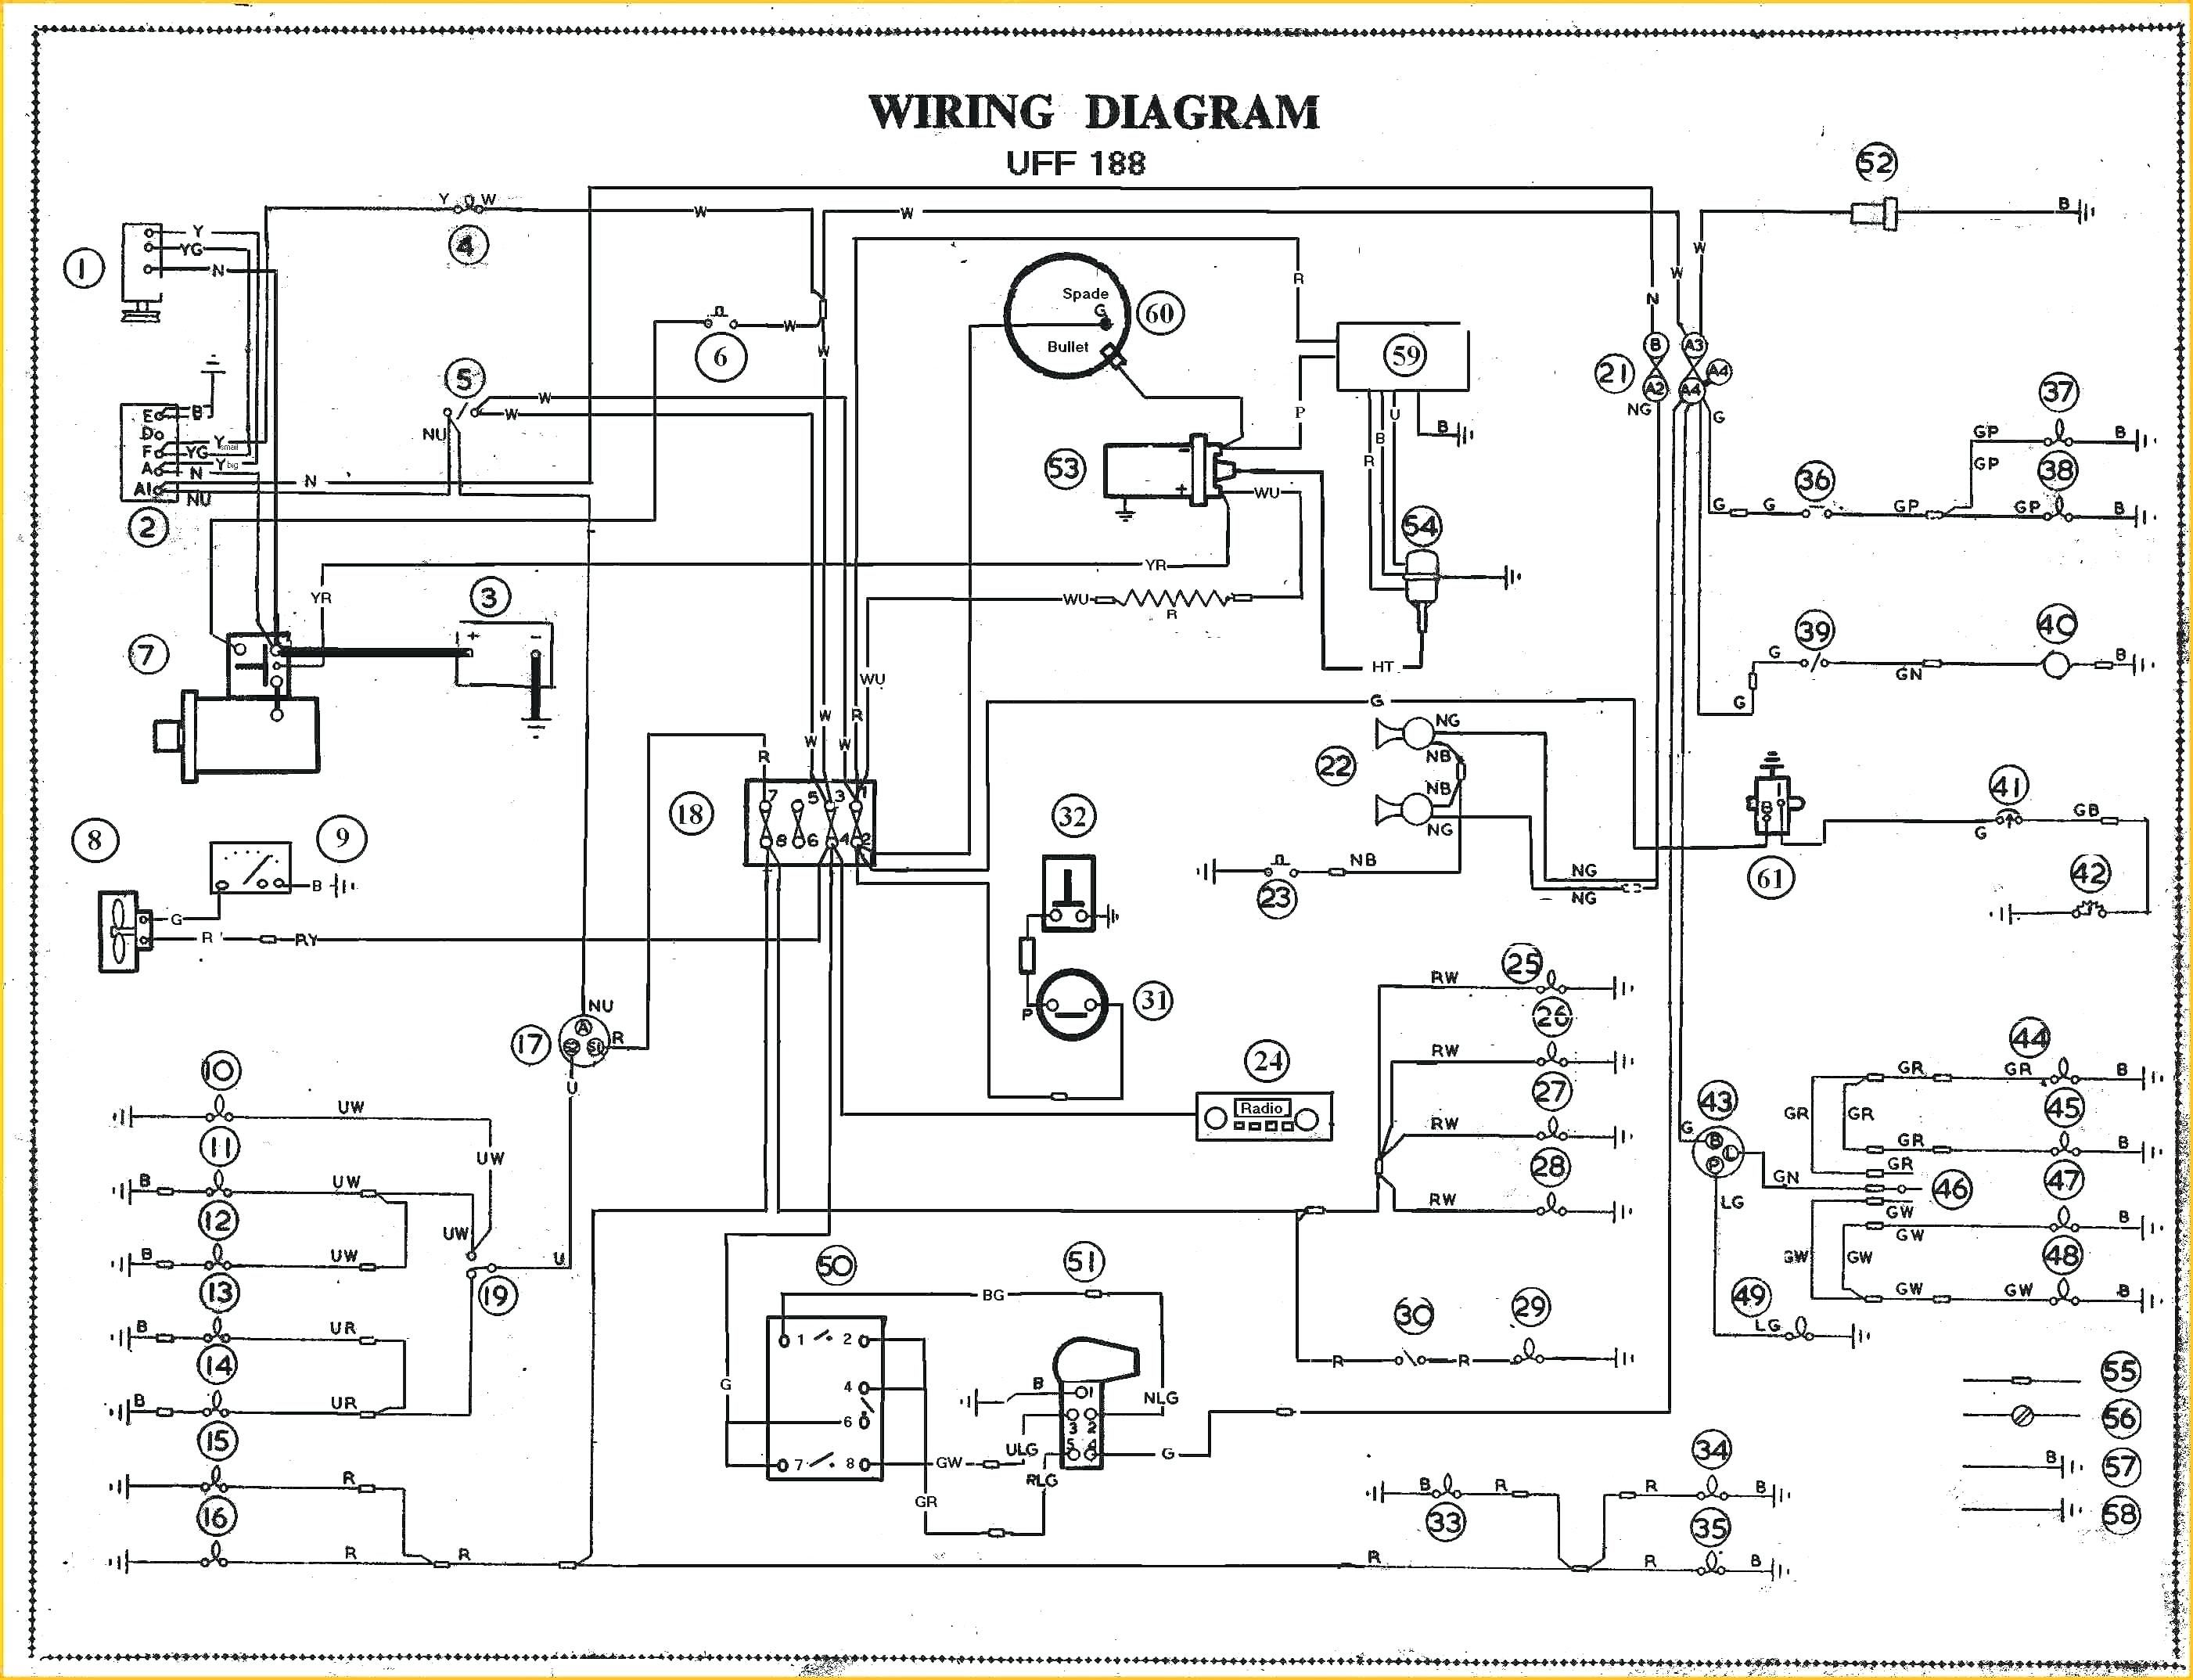 37EB5 Understanding Wiring Diagrams | Digital Resources on circuit design, networking diagrams, understanding electrical prints, understanding organizational charts, understanding electrical wiring, understanding electrical drawings, digital electronics, understanding electrical floor plans, understanding engineering drawings, network analysis, function block diagram, understanding electrical symbols, integrated circuit layout, one-line diagram, wiring diagram, block diagram, understanding blueprints, electronic circuit diagrams, data flow diagram, wiring diagrams,